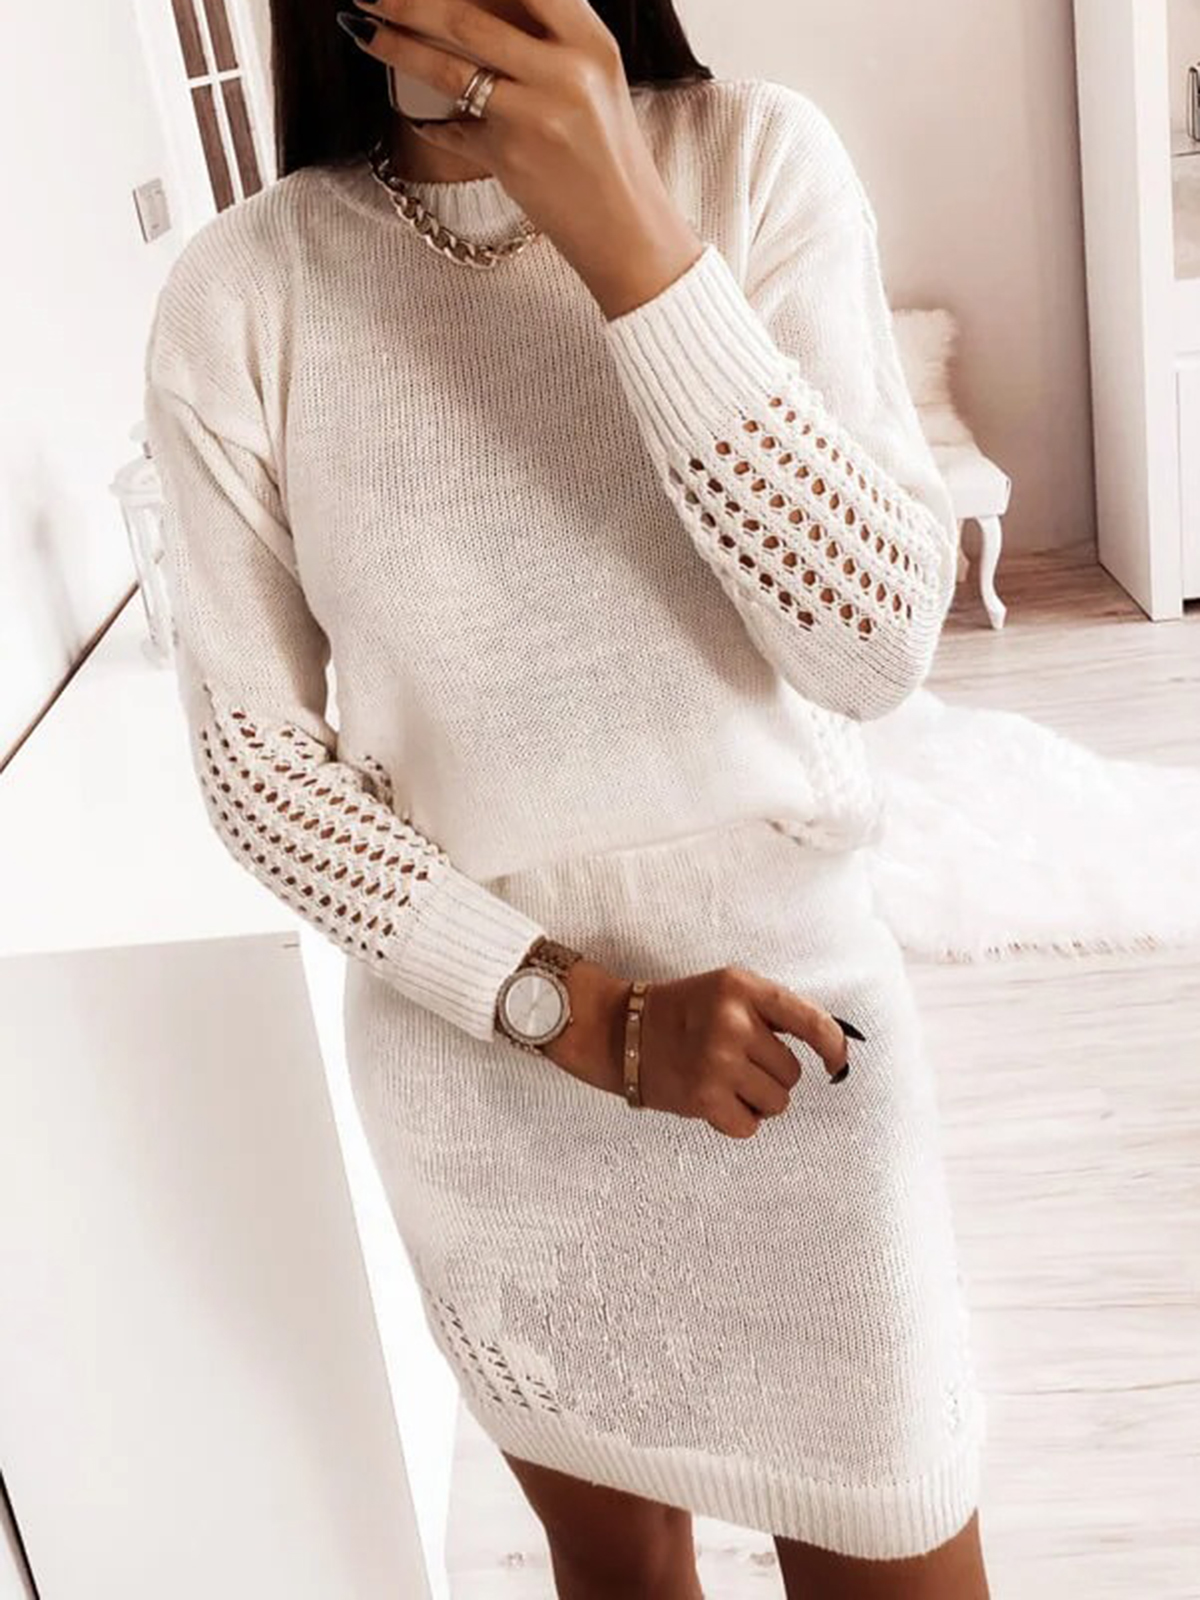 Dresses Women'S High Neck Tight-Fitting Knitted Sexy Hollow